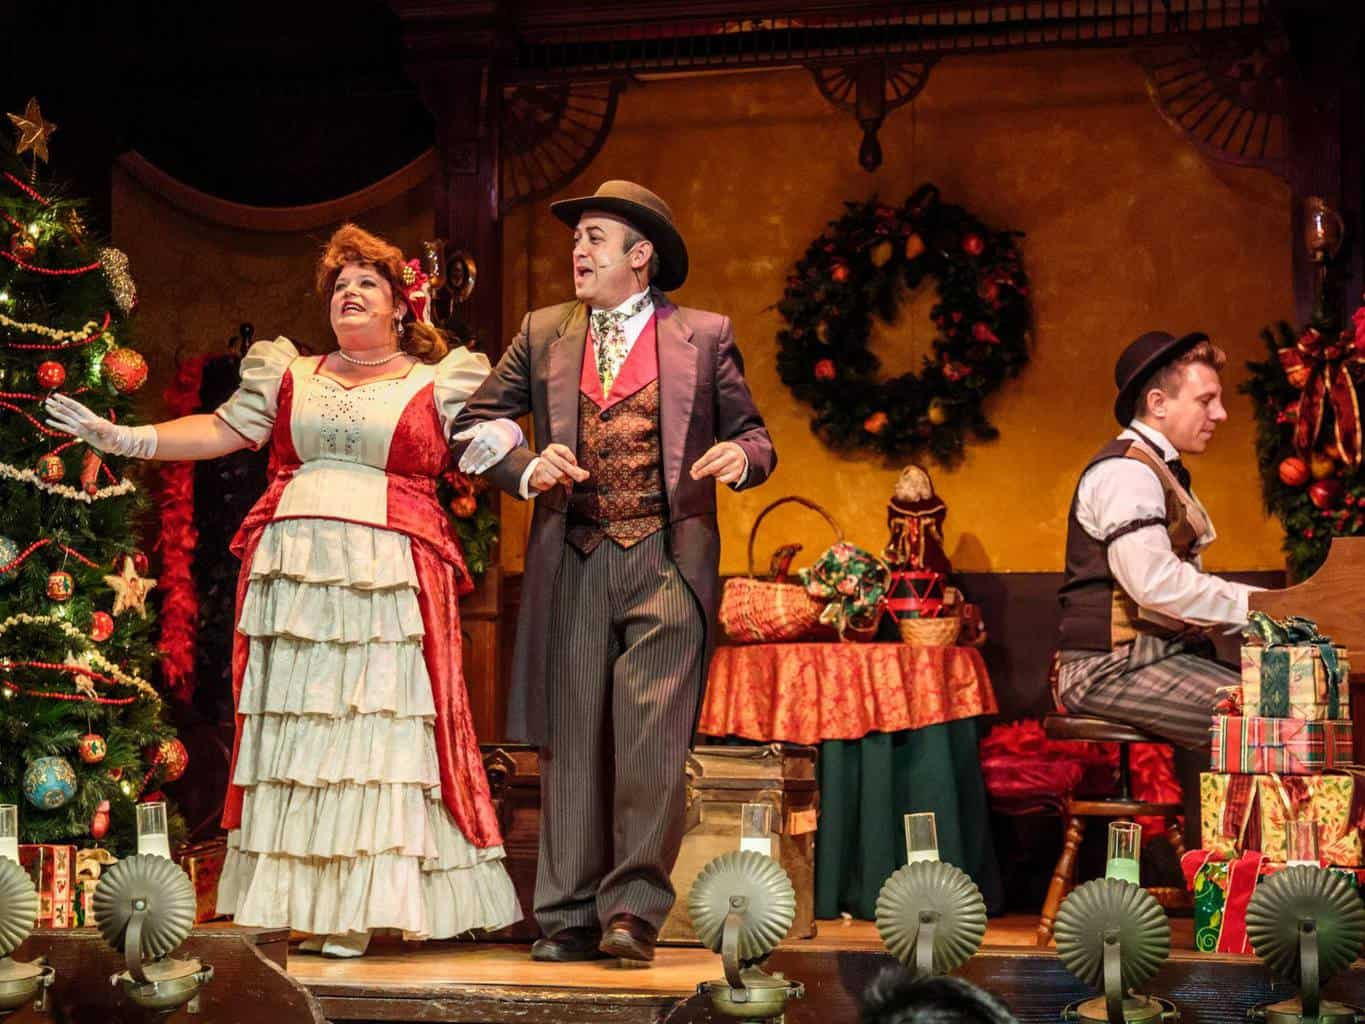 Christmas shows at Merry Farm